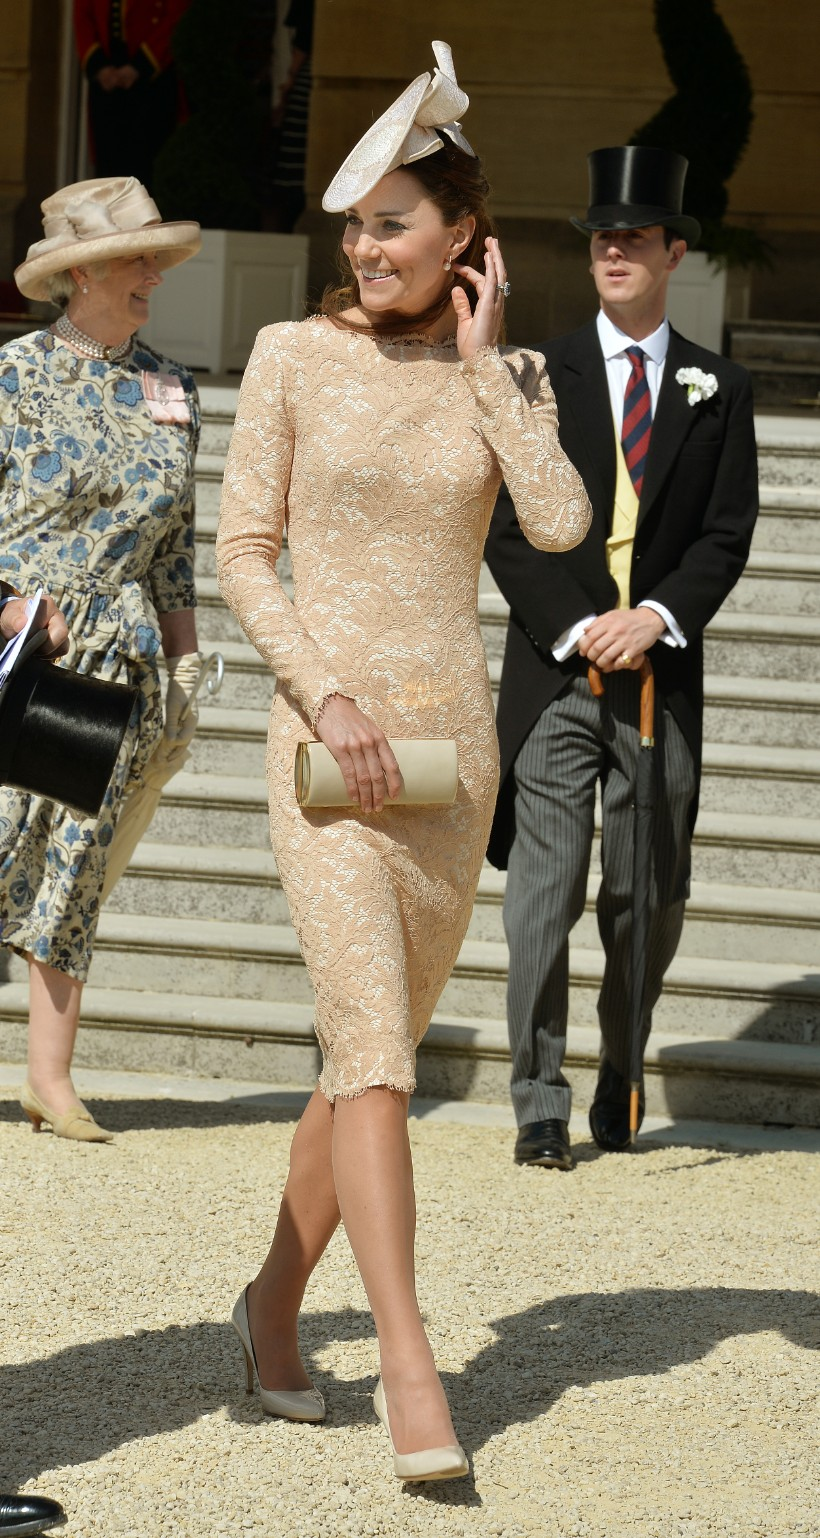 Kate Middleton Wears McQueen at Buckingplace Garden Party for Prince Philip's Birthday (2)